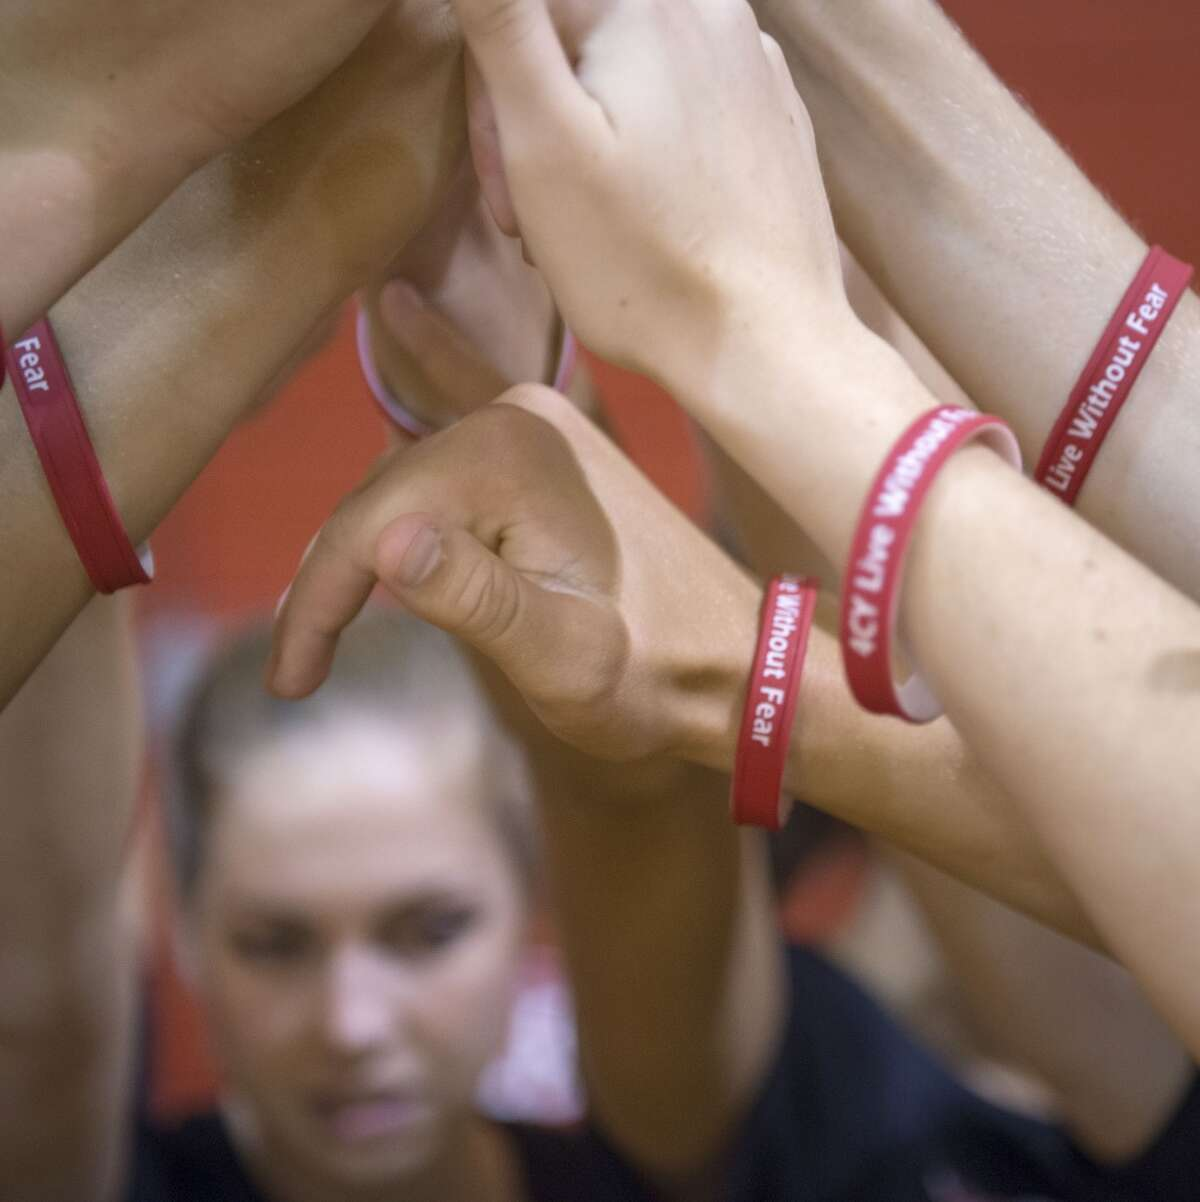 Members of the Memorial volleyball team wear bracelets reading